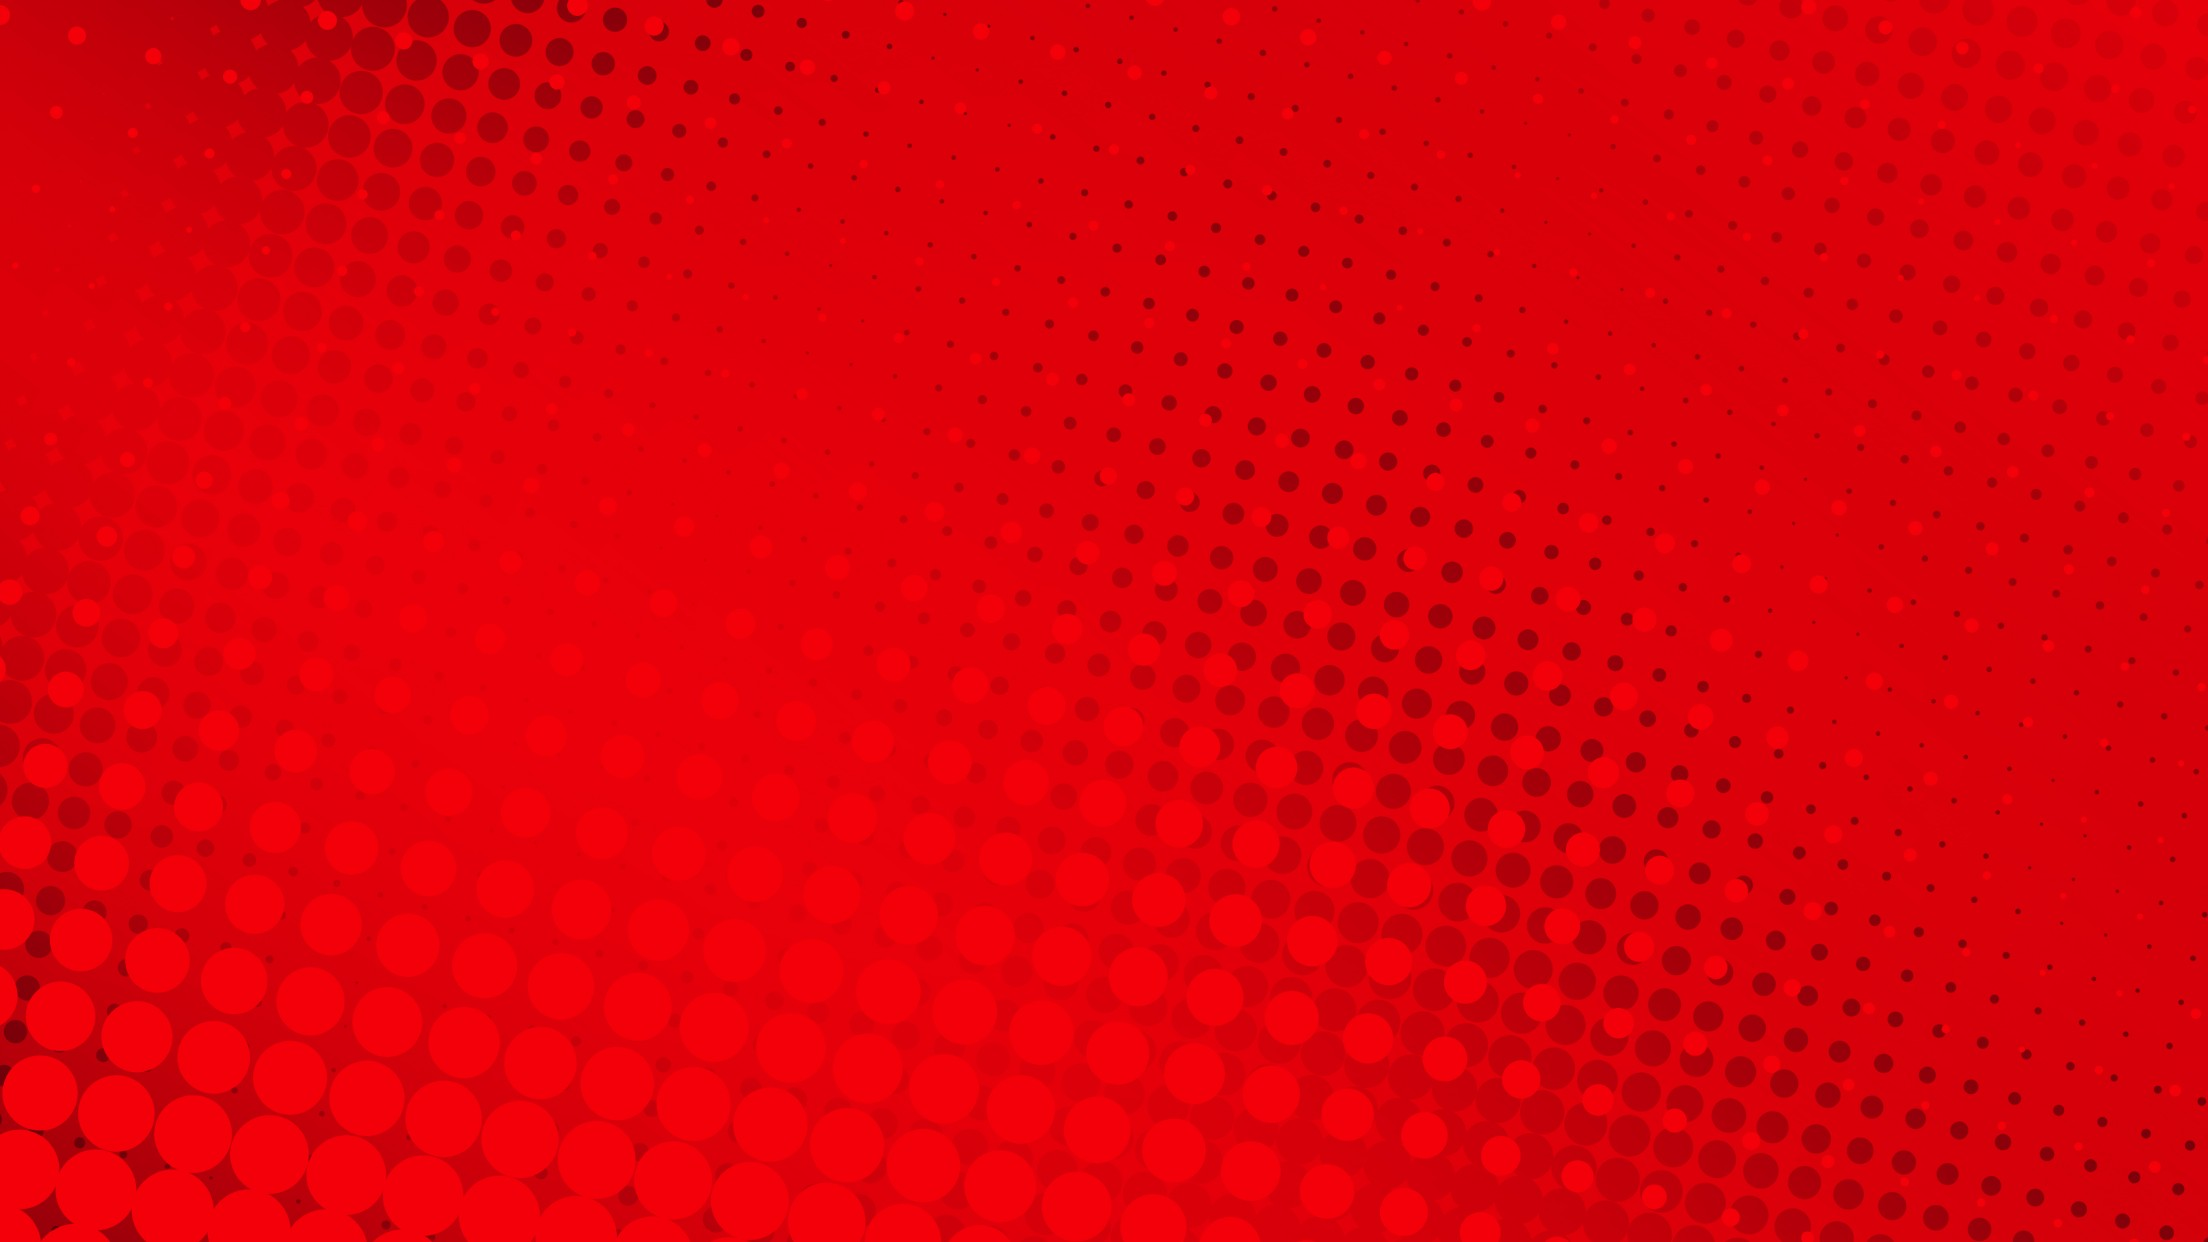 Army Iphone X Wallpaper Red Halftone Background Hd Wallpapers Hd Backgrounds